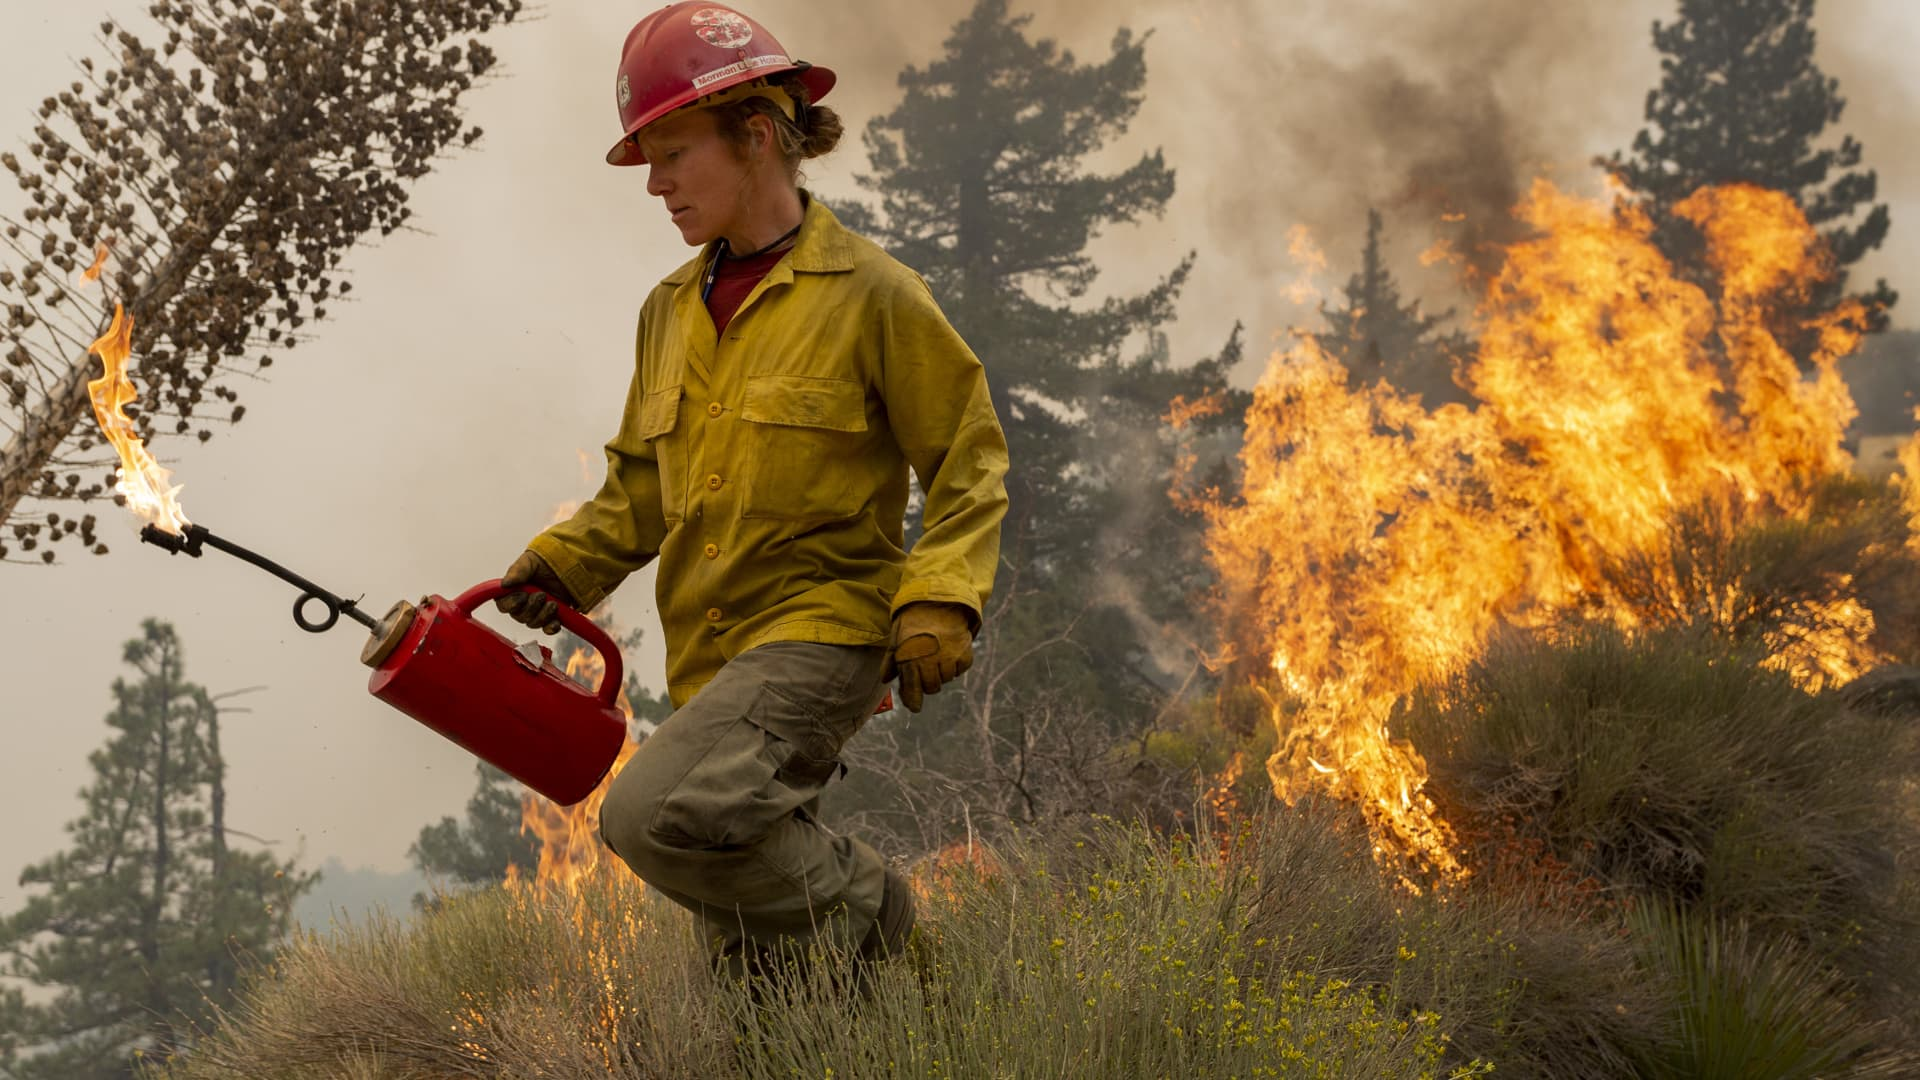 Firefighter Sara Sweeney uses a drip torch to set a backfire to protect mountain communities from the Bobcat Fire in the Angeles National Forest on September 10, 2020 north of Monrovia, California.